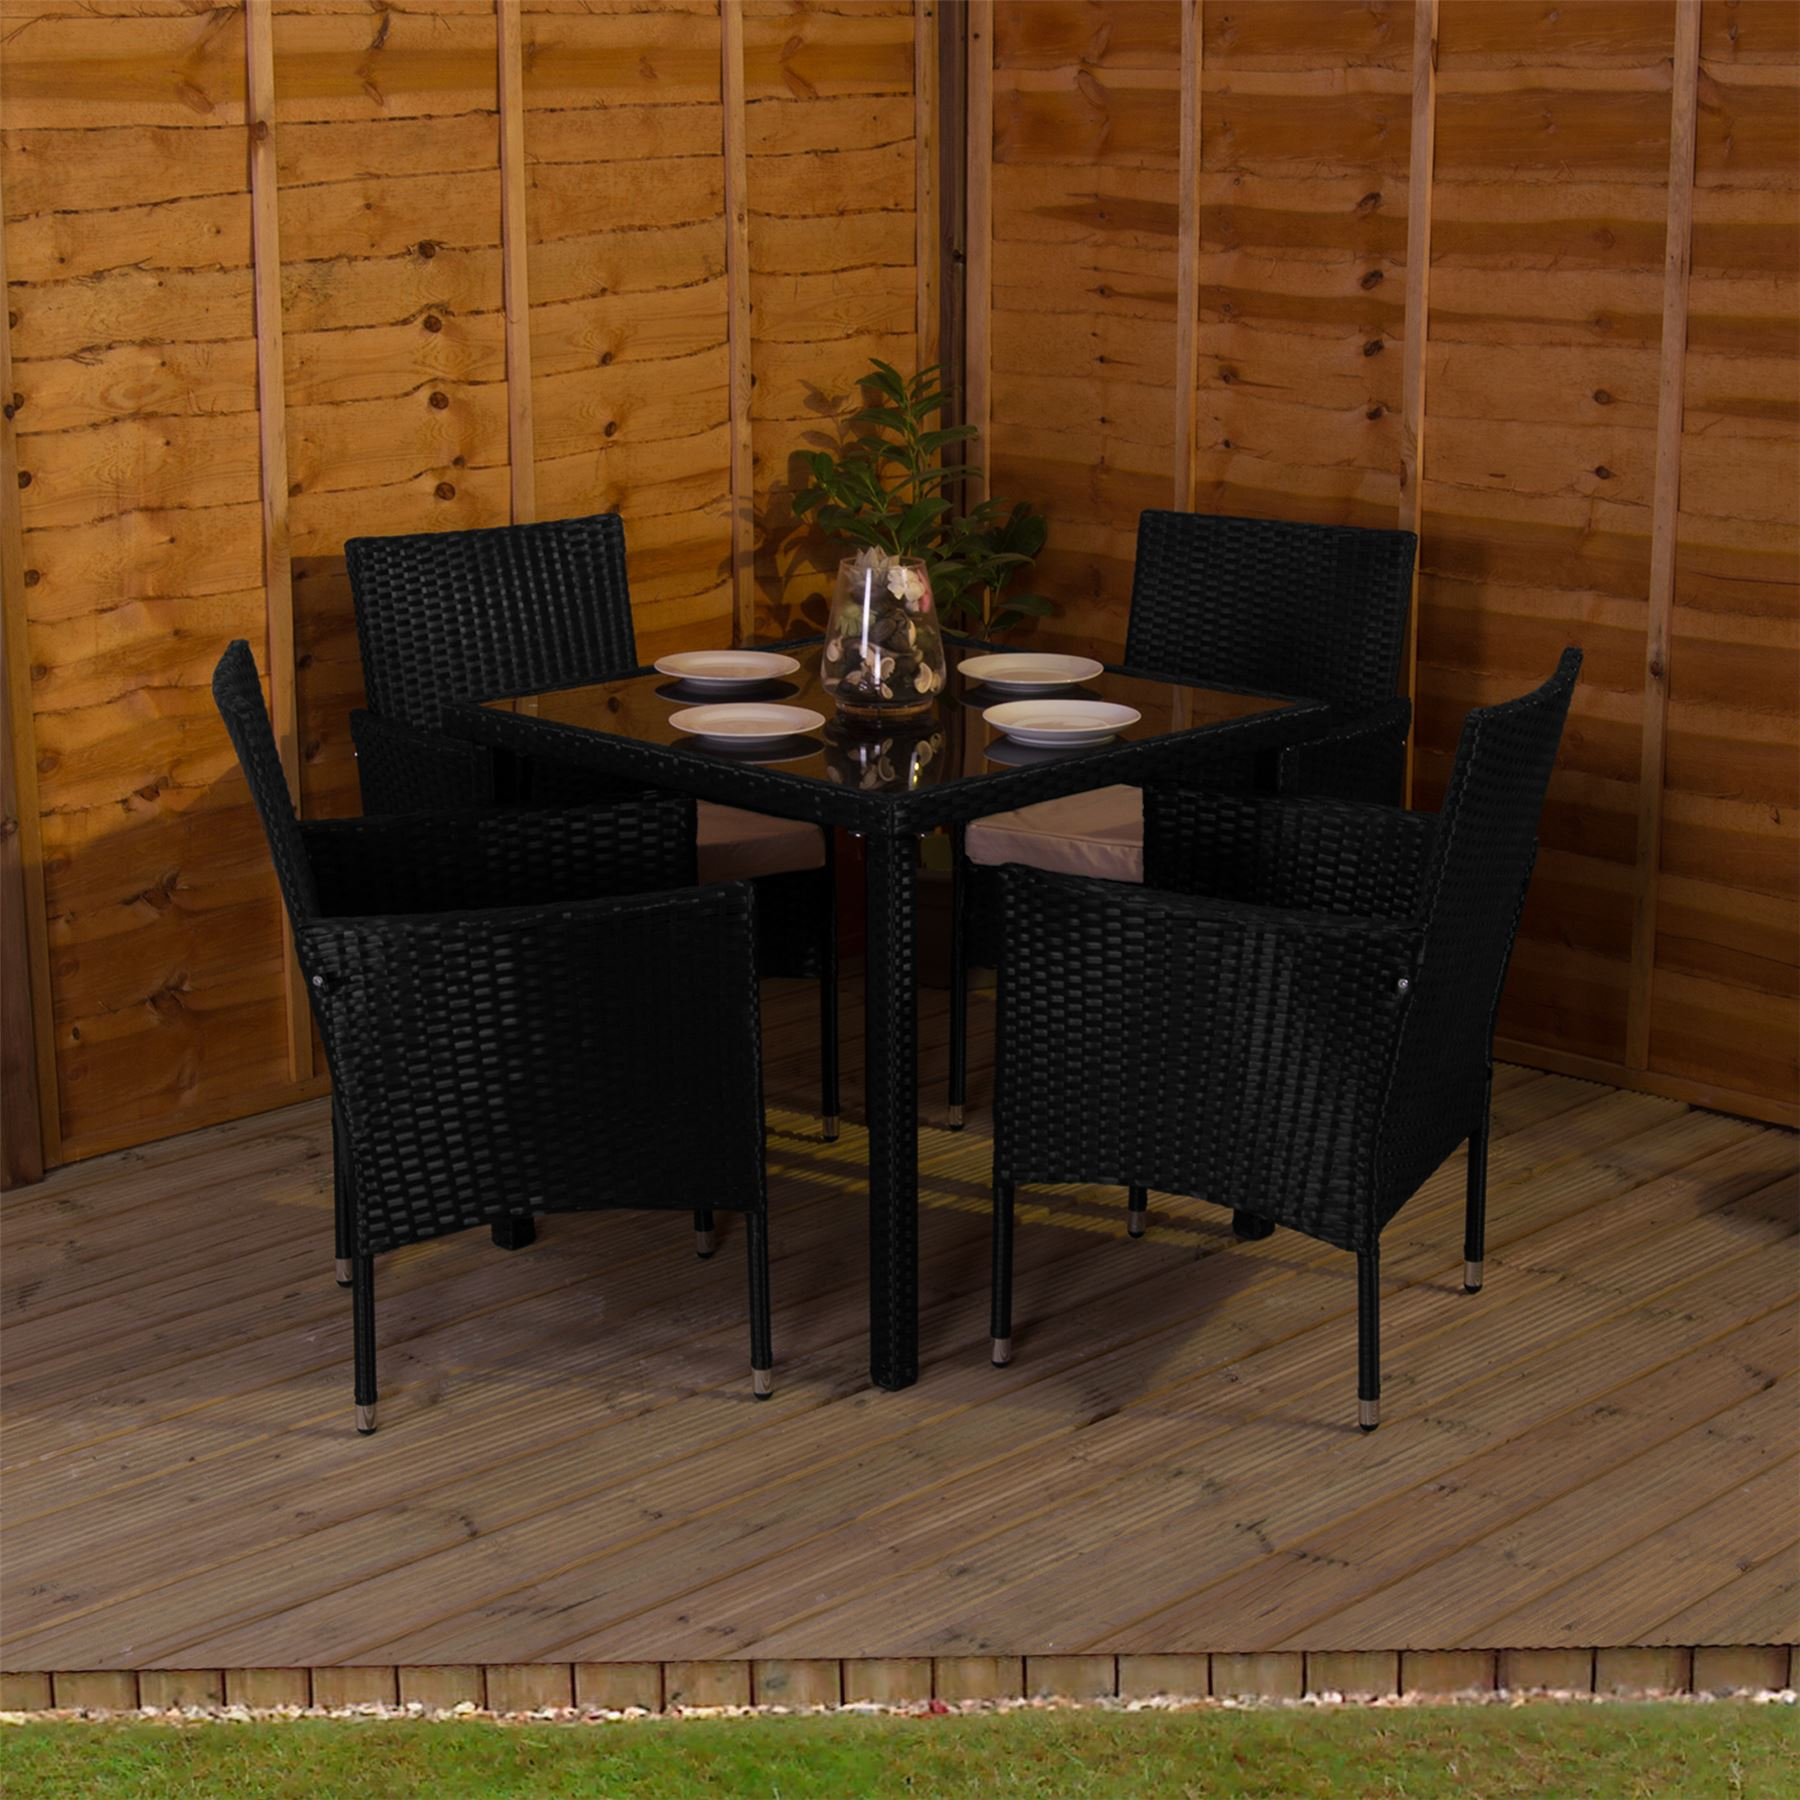 Malpas Garden Rattan Furniture 4 Seater Dining Set Outdoor Table ...